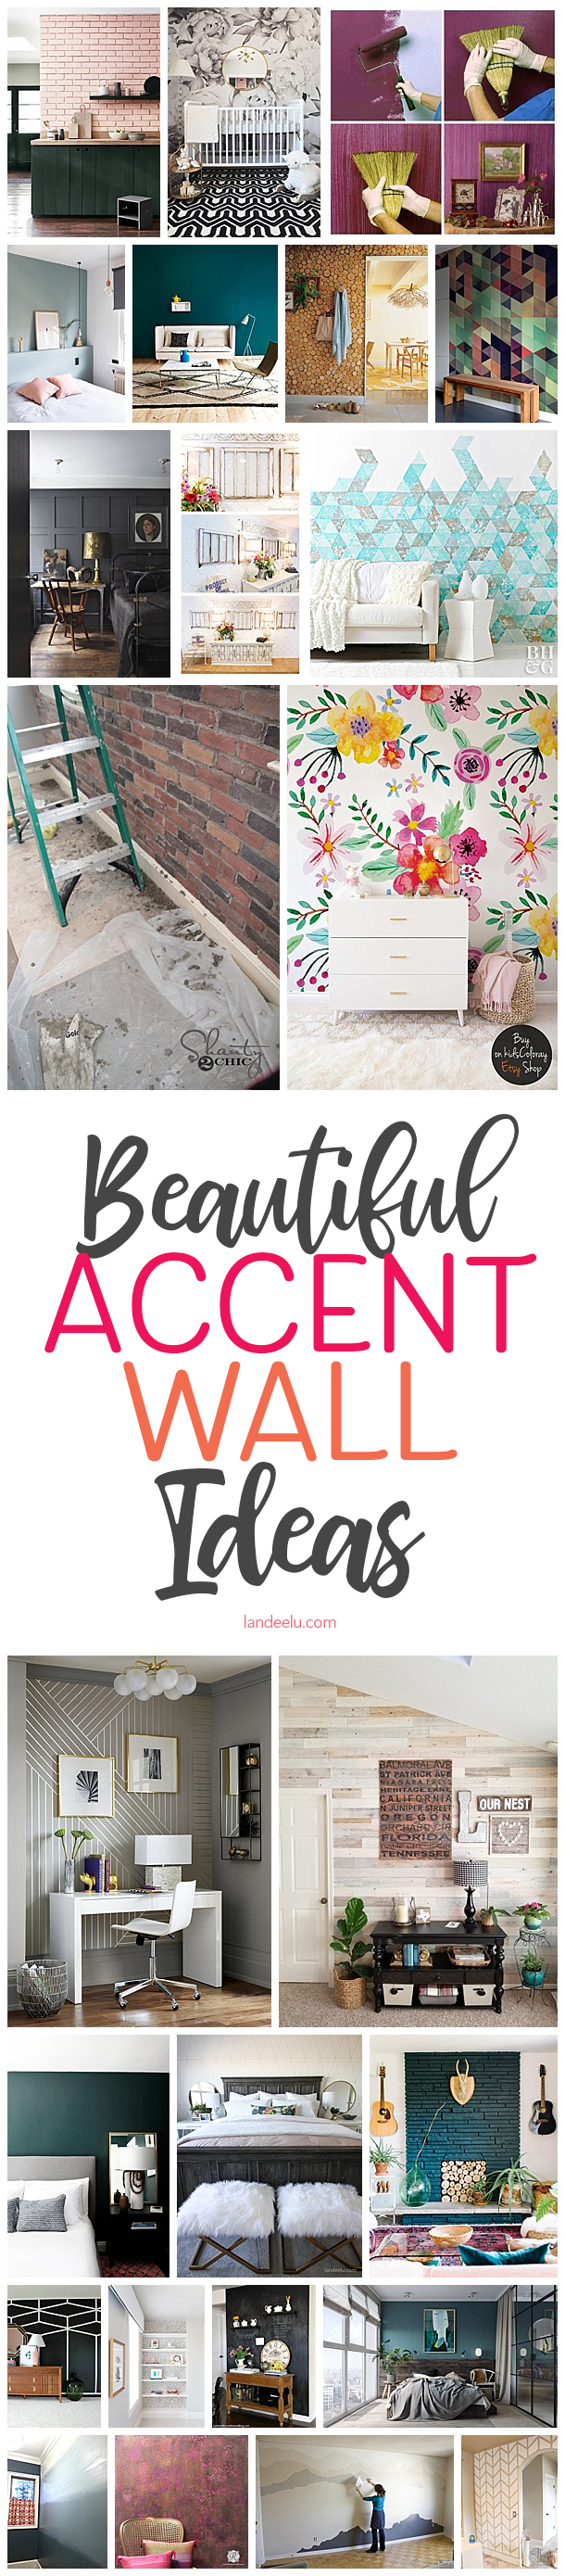 I love these accent wall ideas! So pretty!